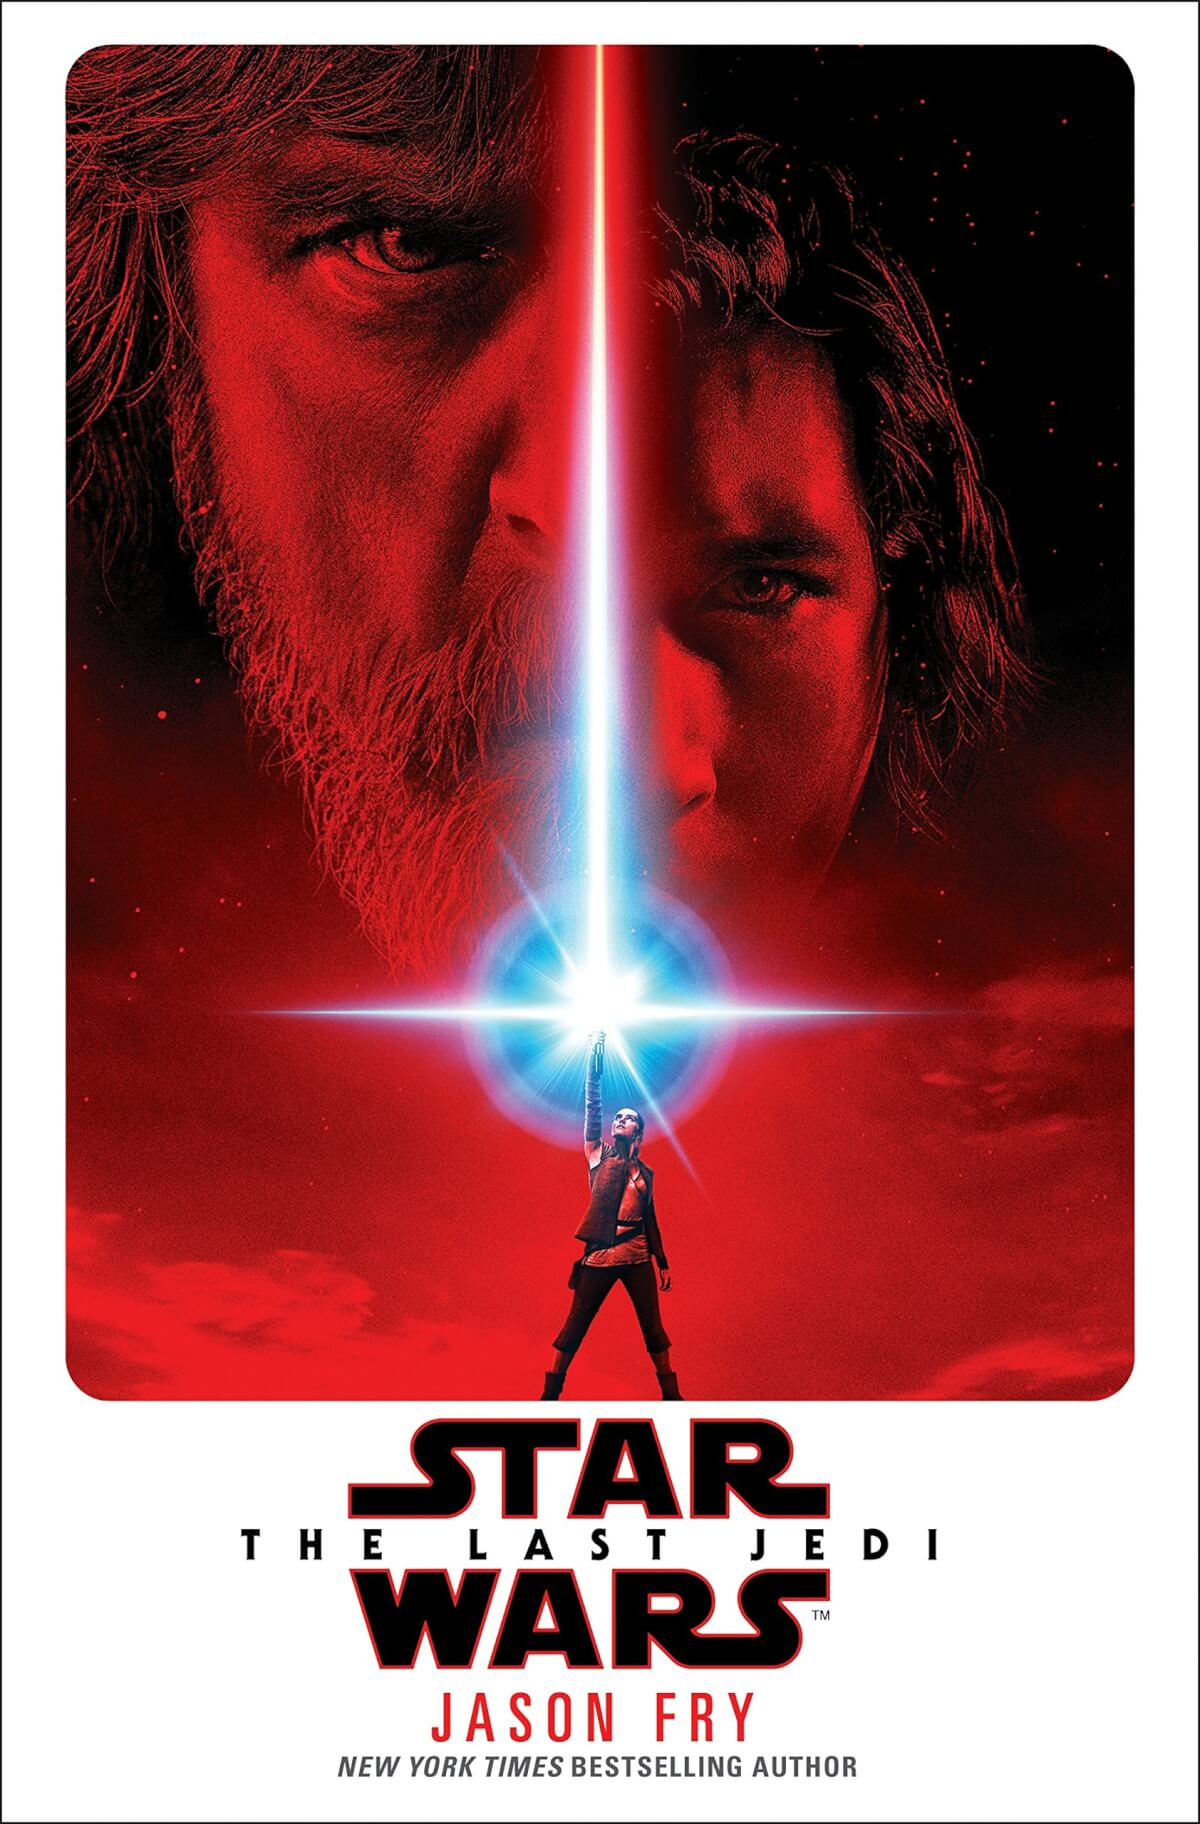 Why is the novel of 'The Last Jedi' taking so long to publish?